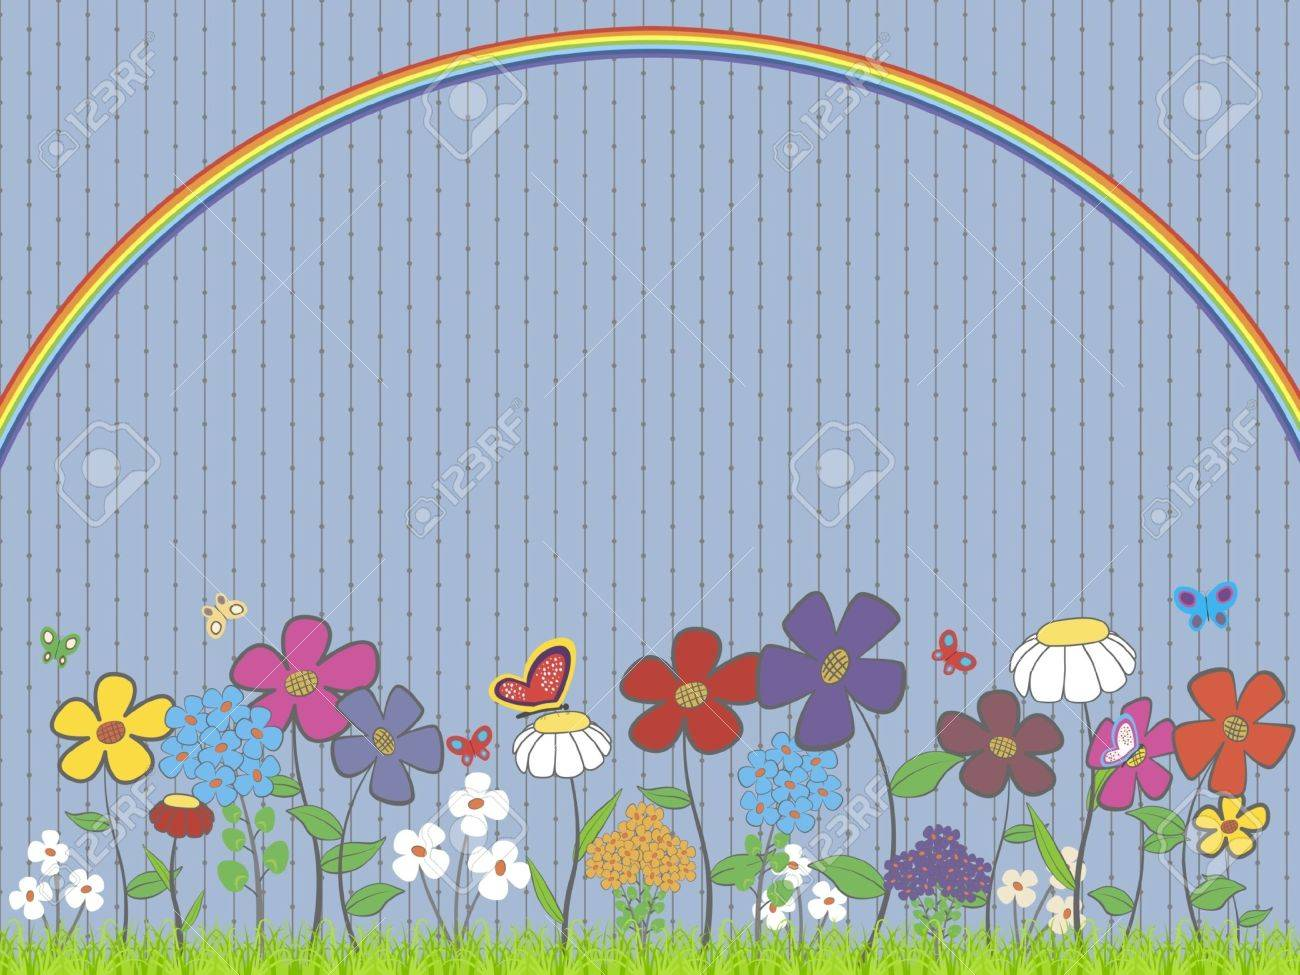 illustration - lawn with flowers and butterflies under the rainbow Stock Vector - 12322640